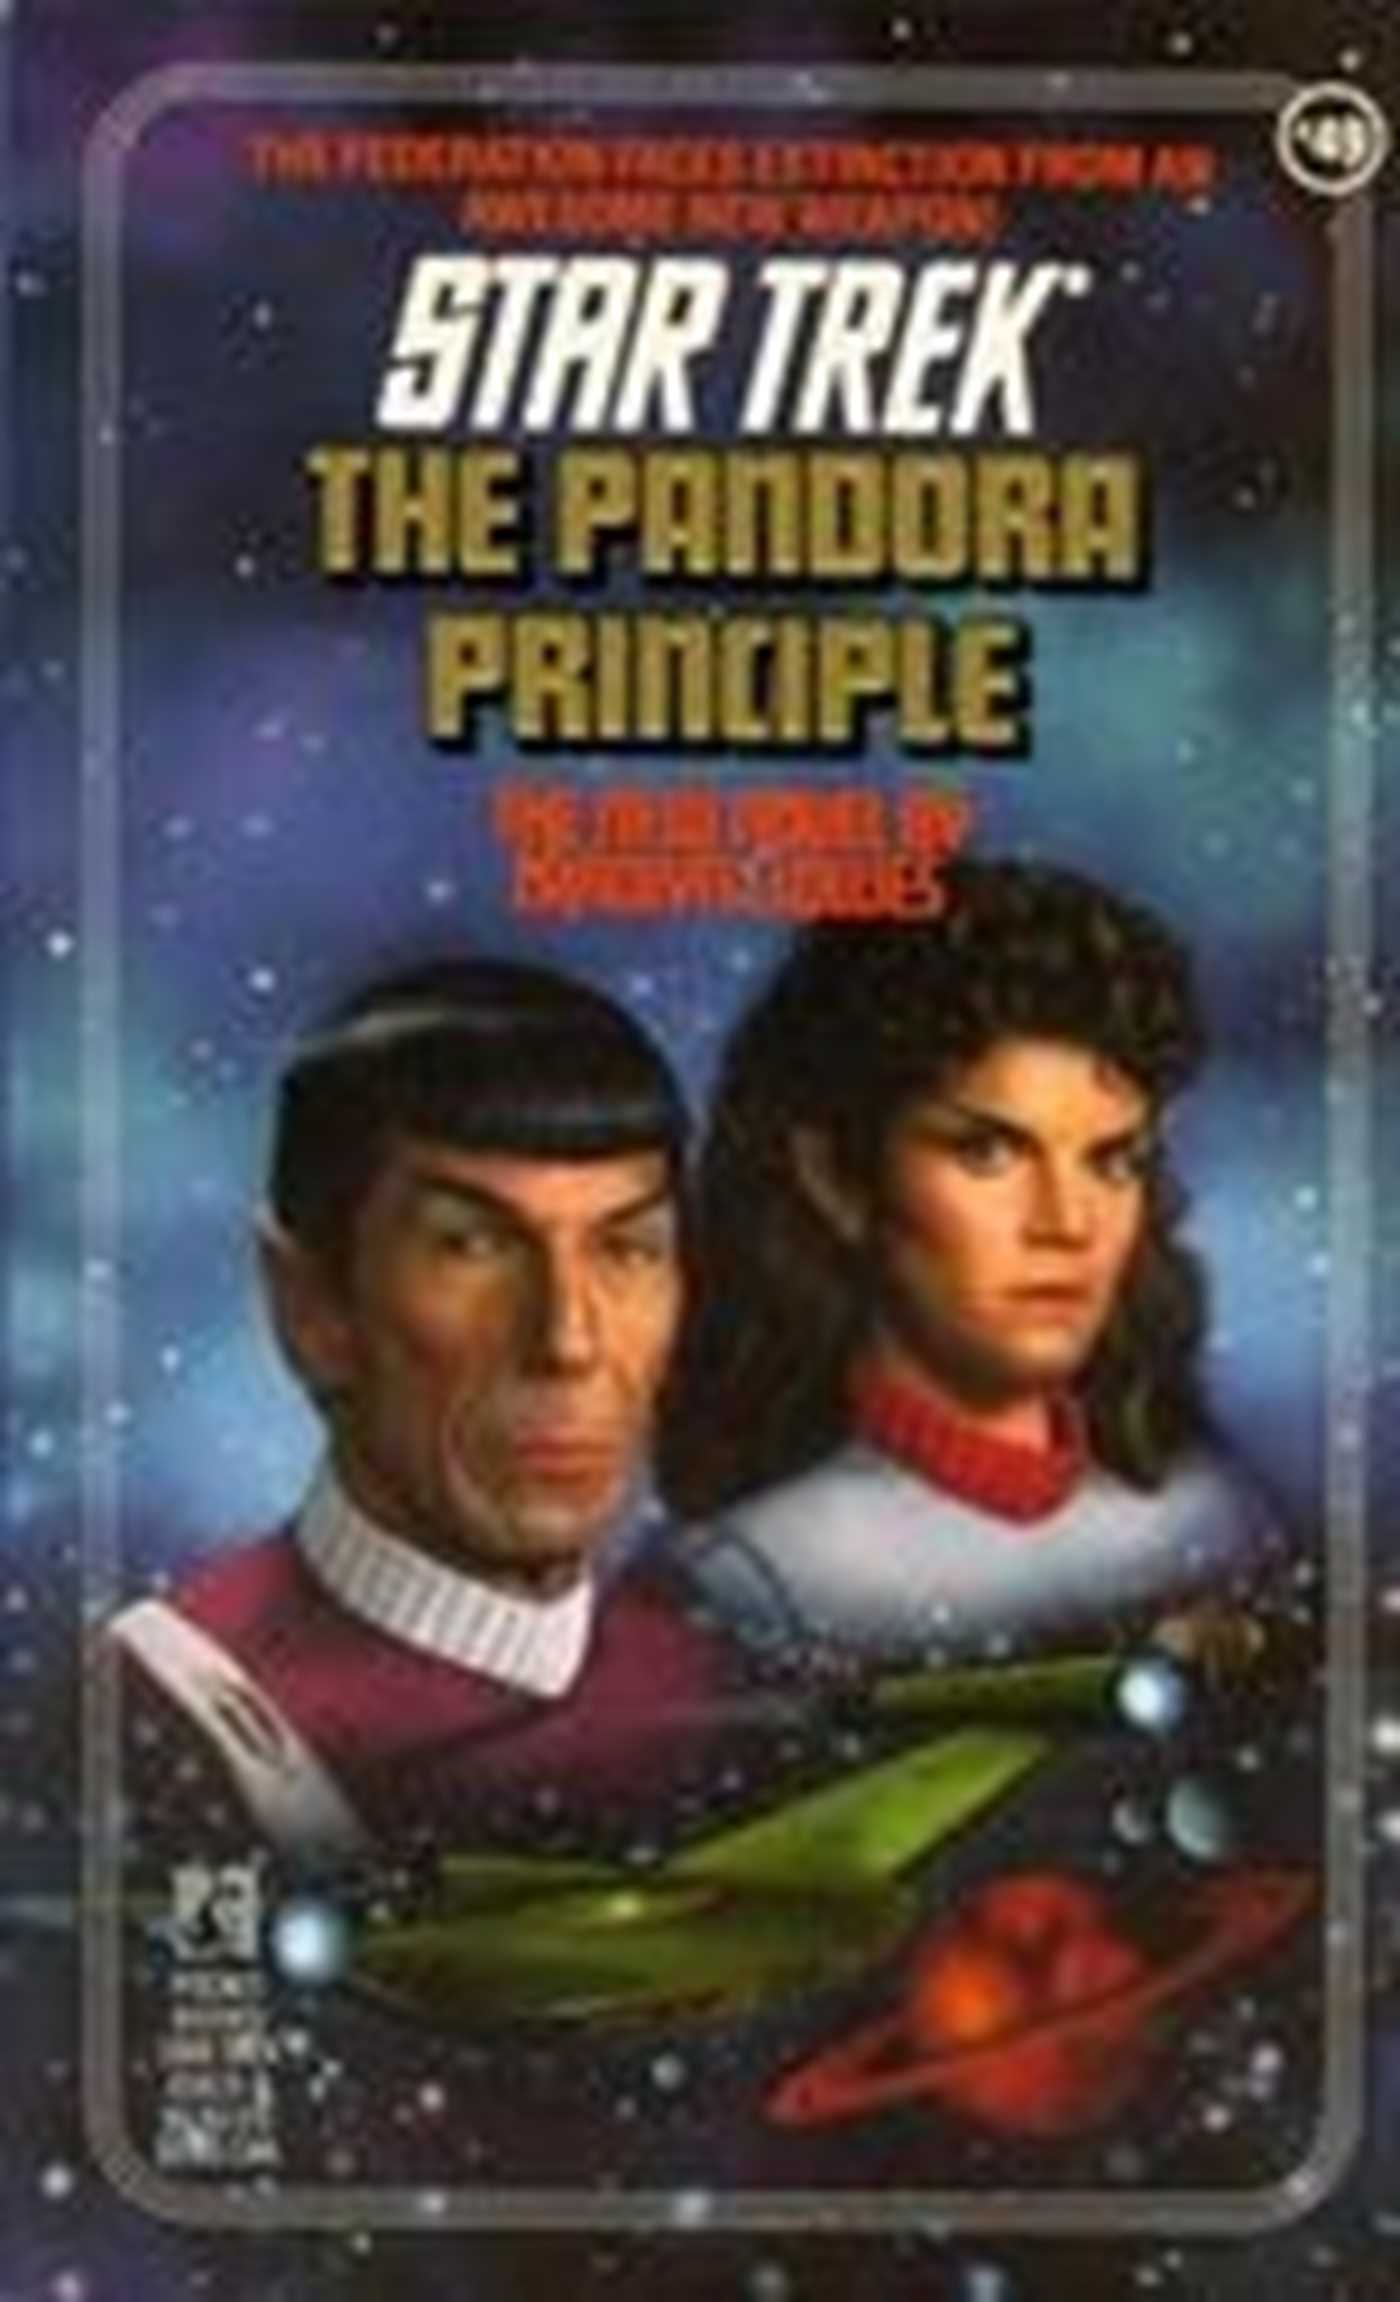 The pandora principle 9780743420006 hr